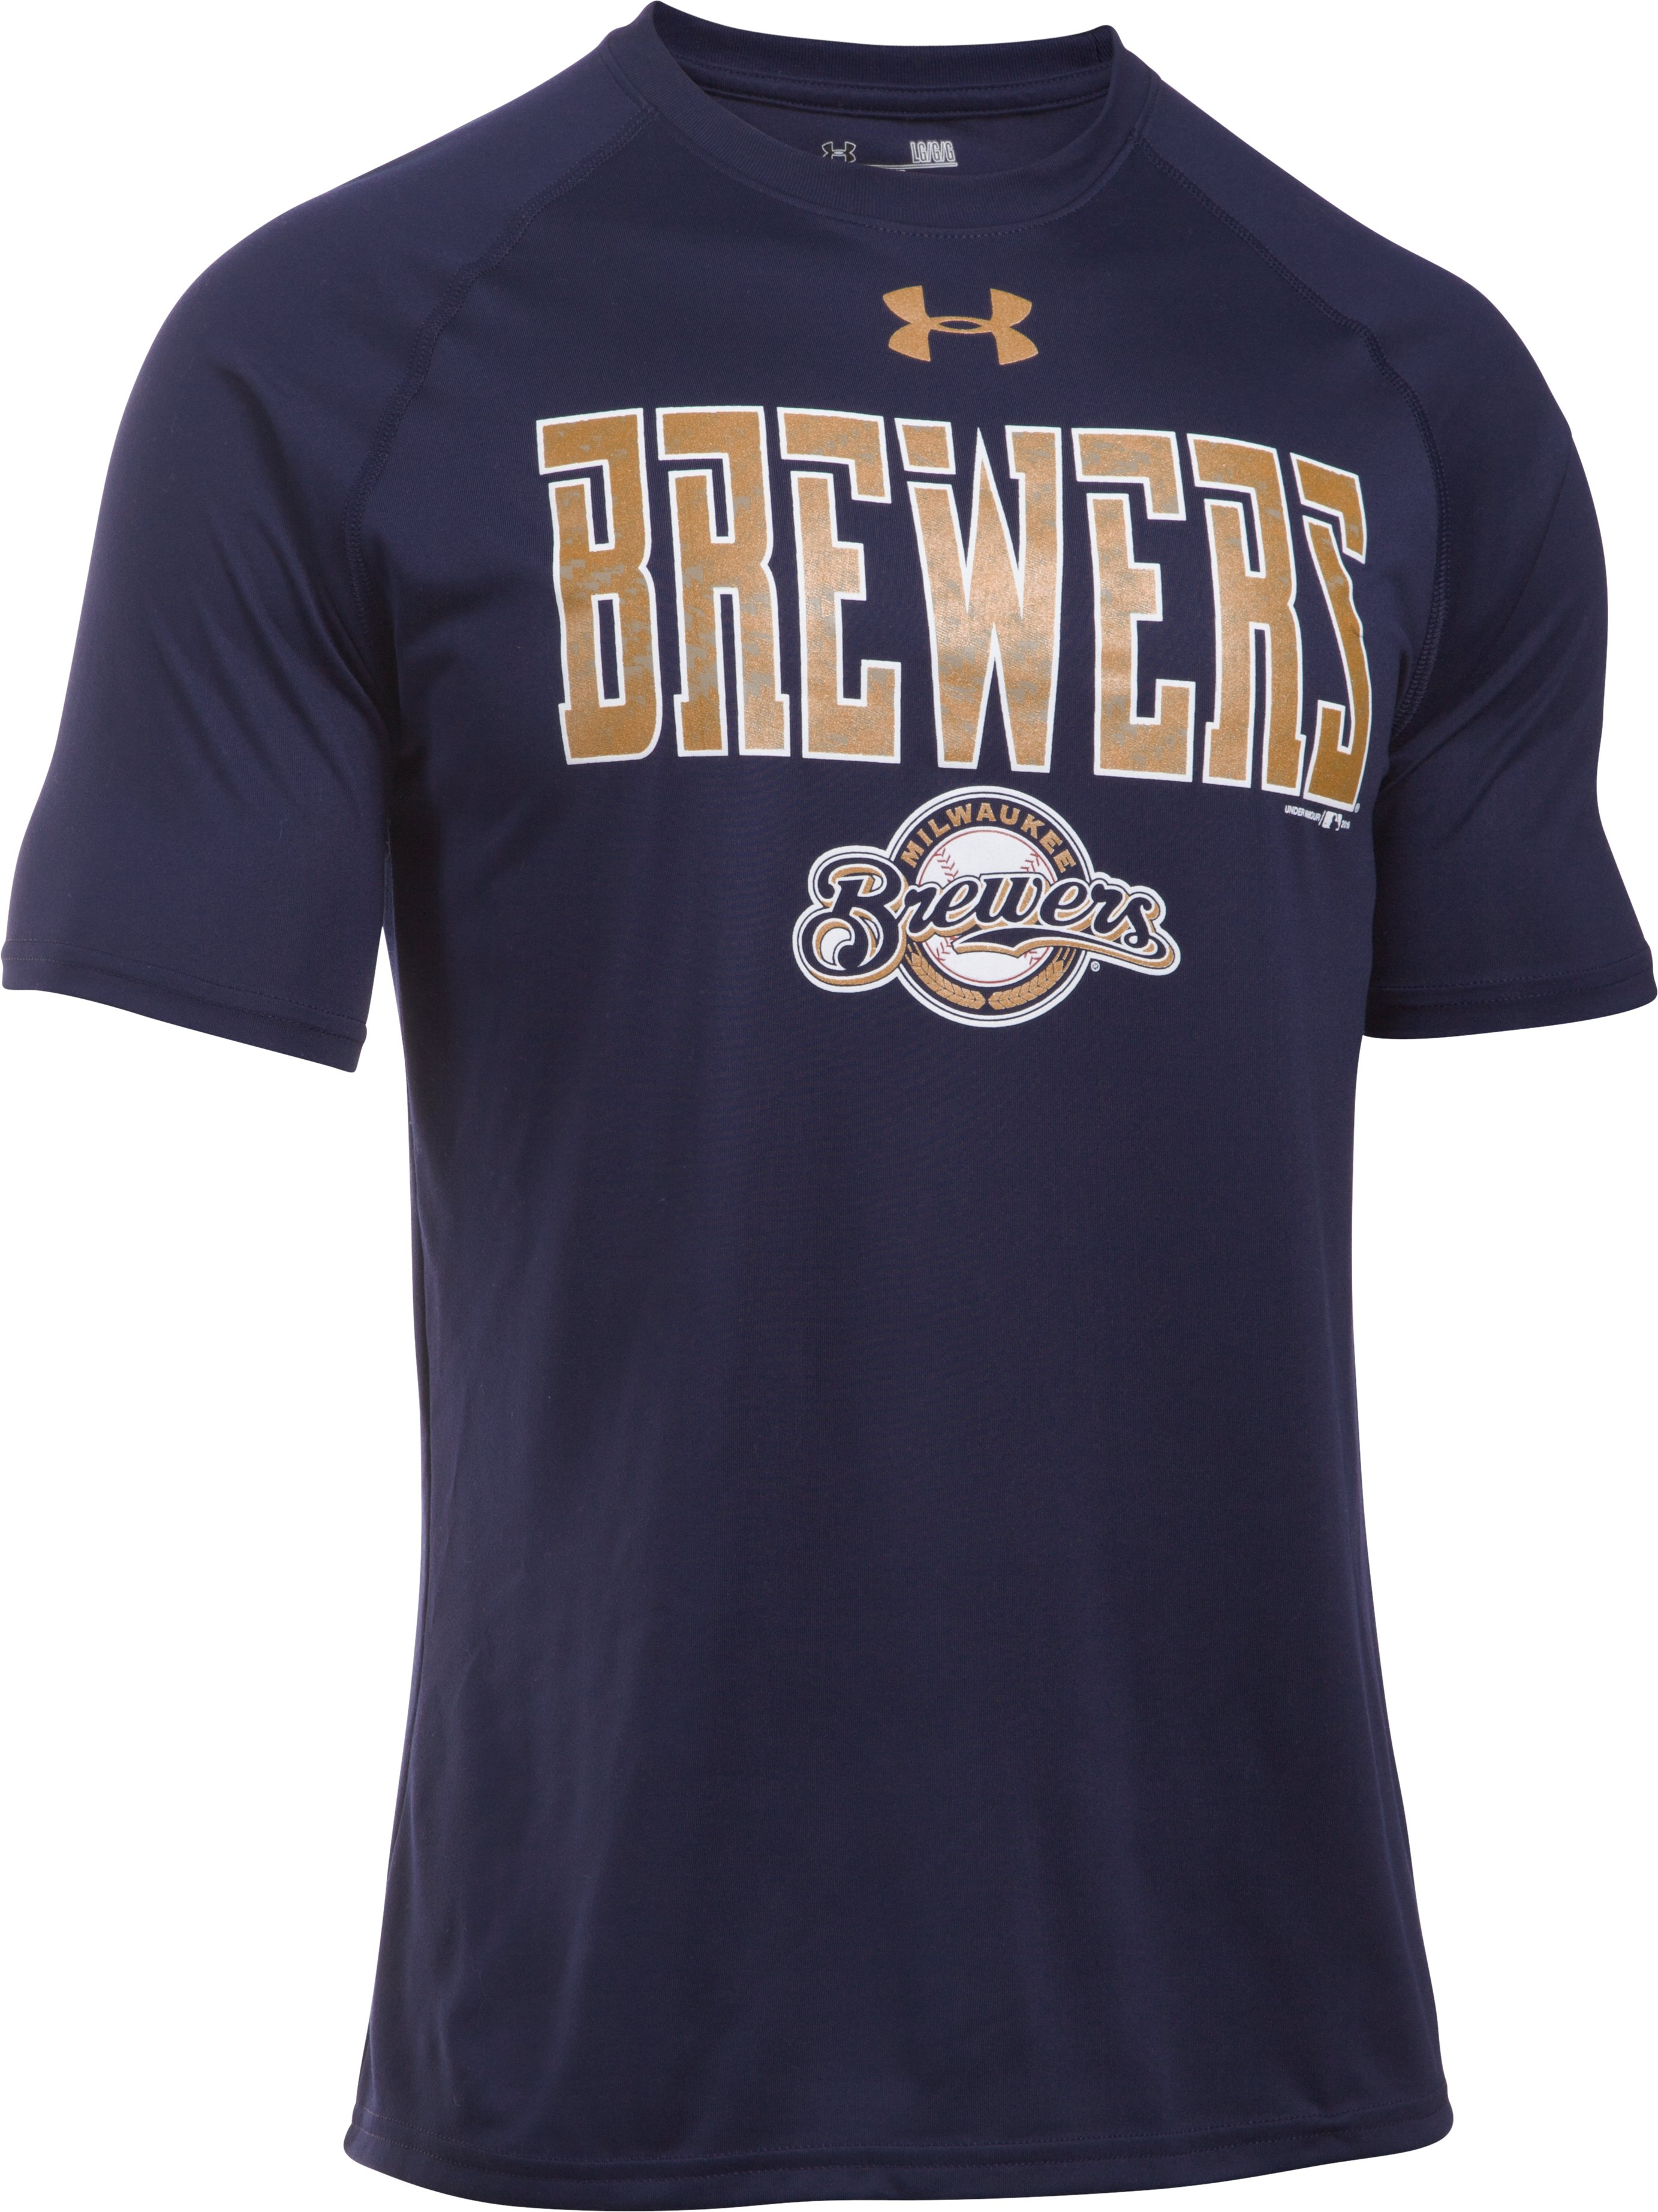 Men's Milwaukee Brewers Team Tech™ T-Shirt, Midnight Navy, undefined